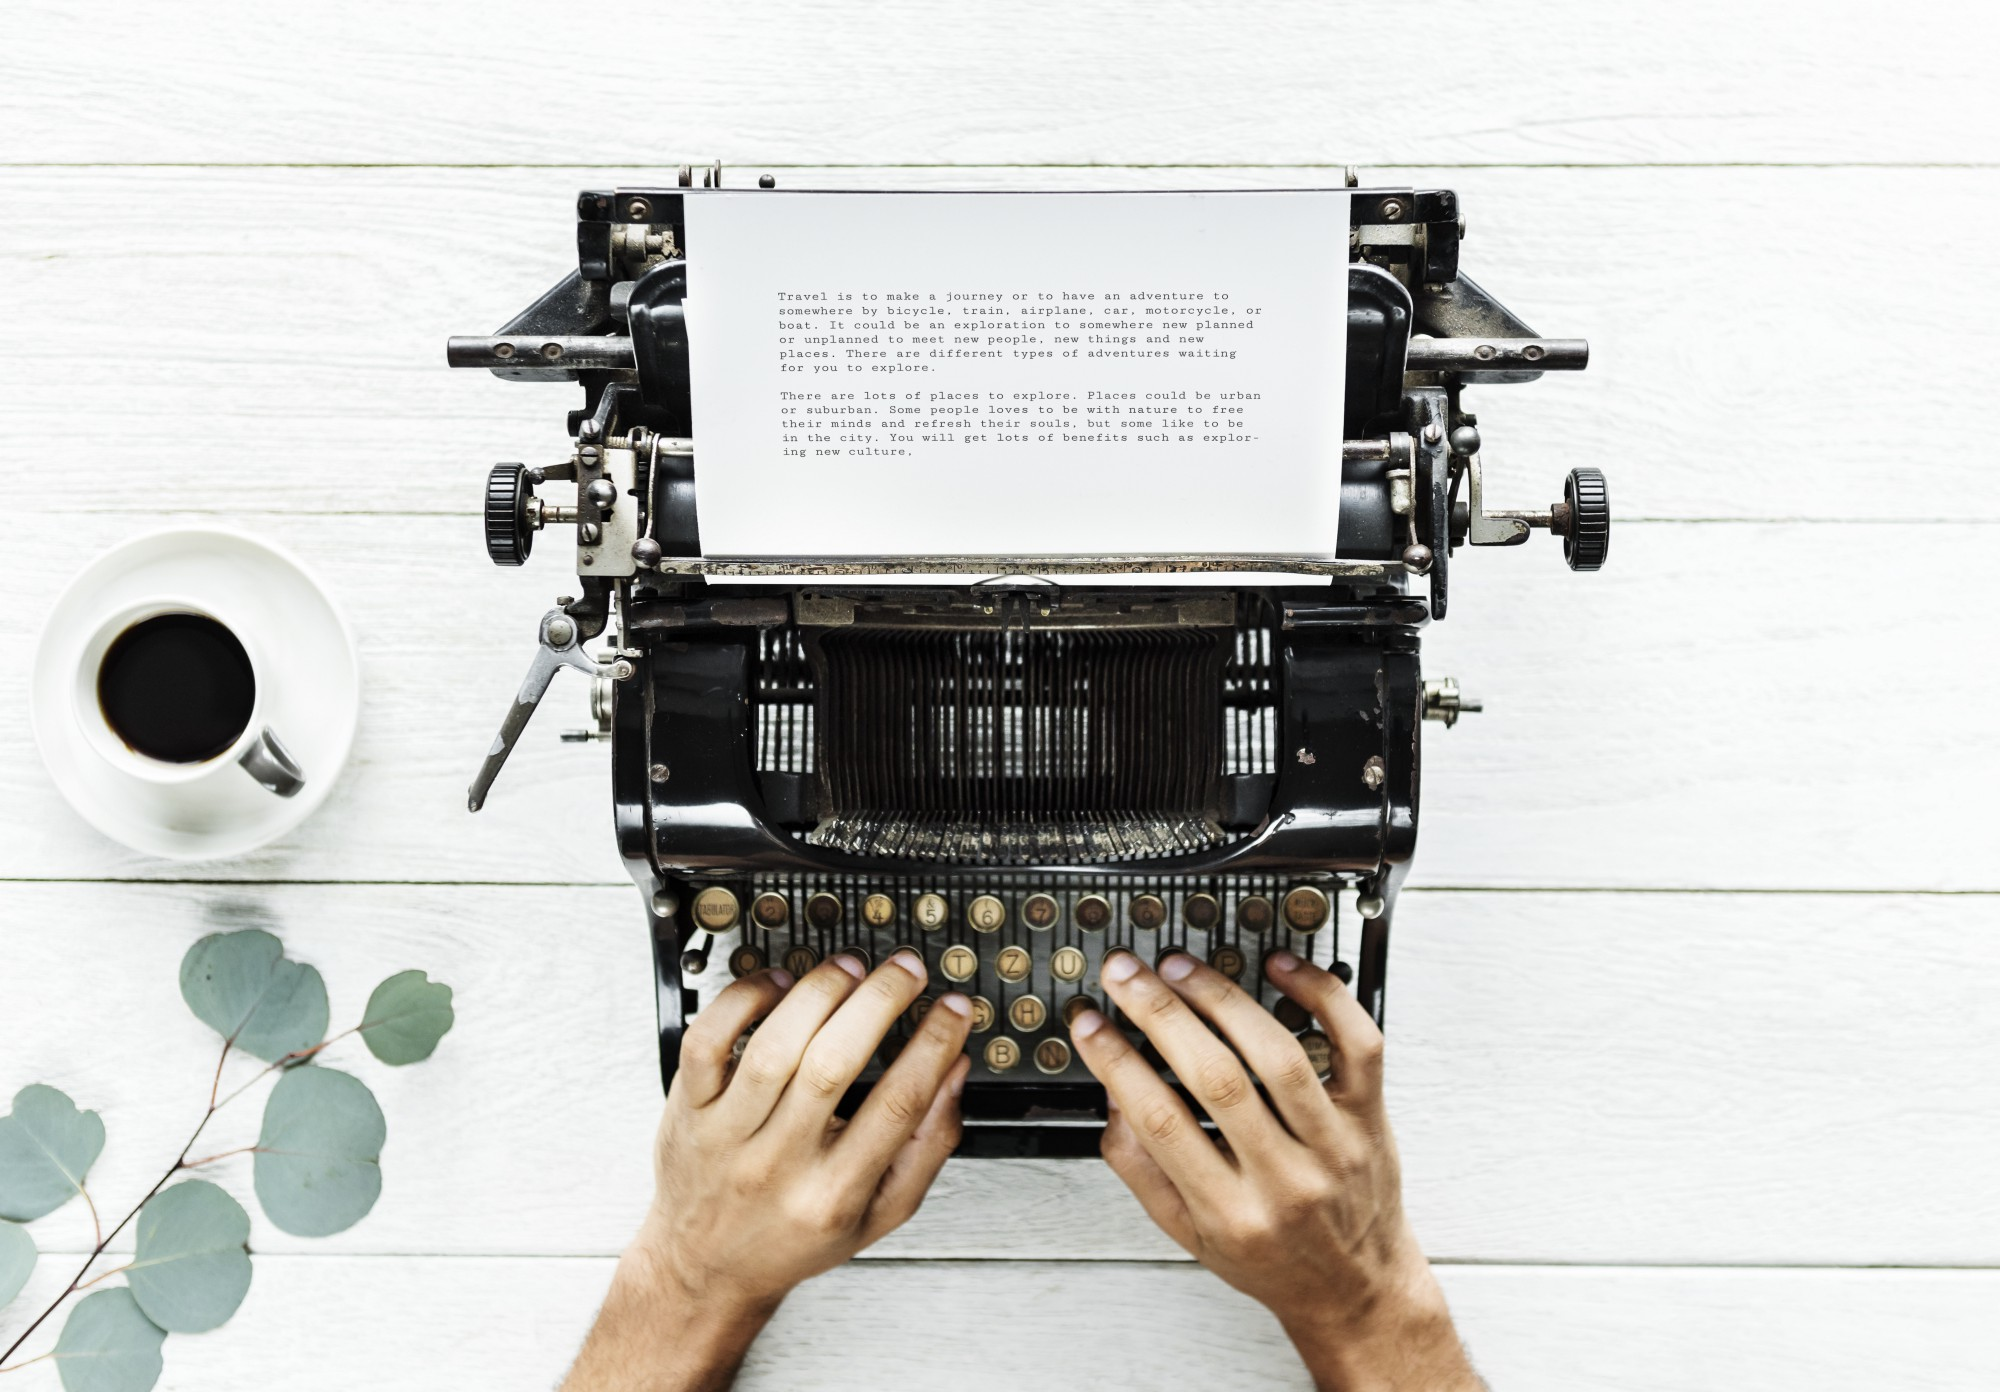 The Difference Between Good and Bad Writers